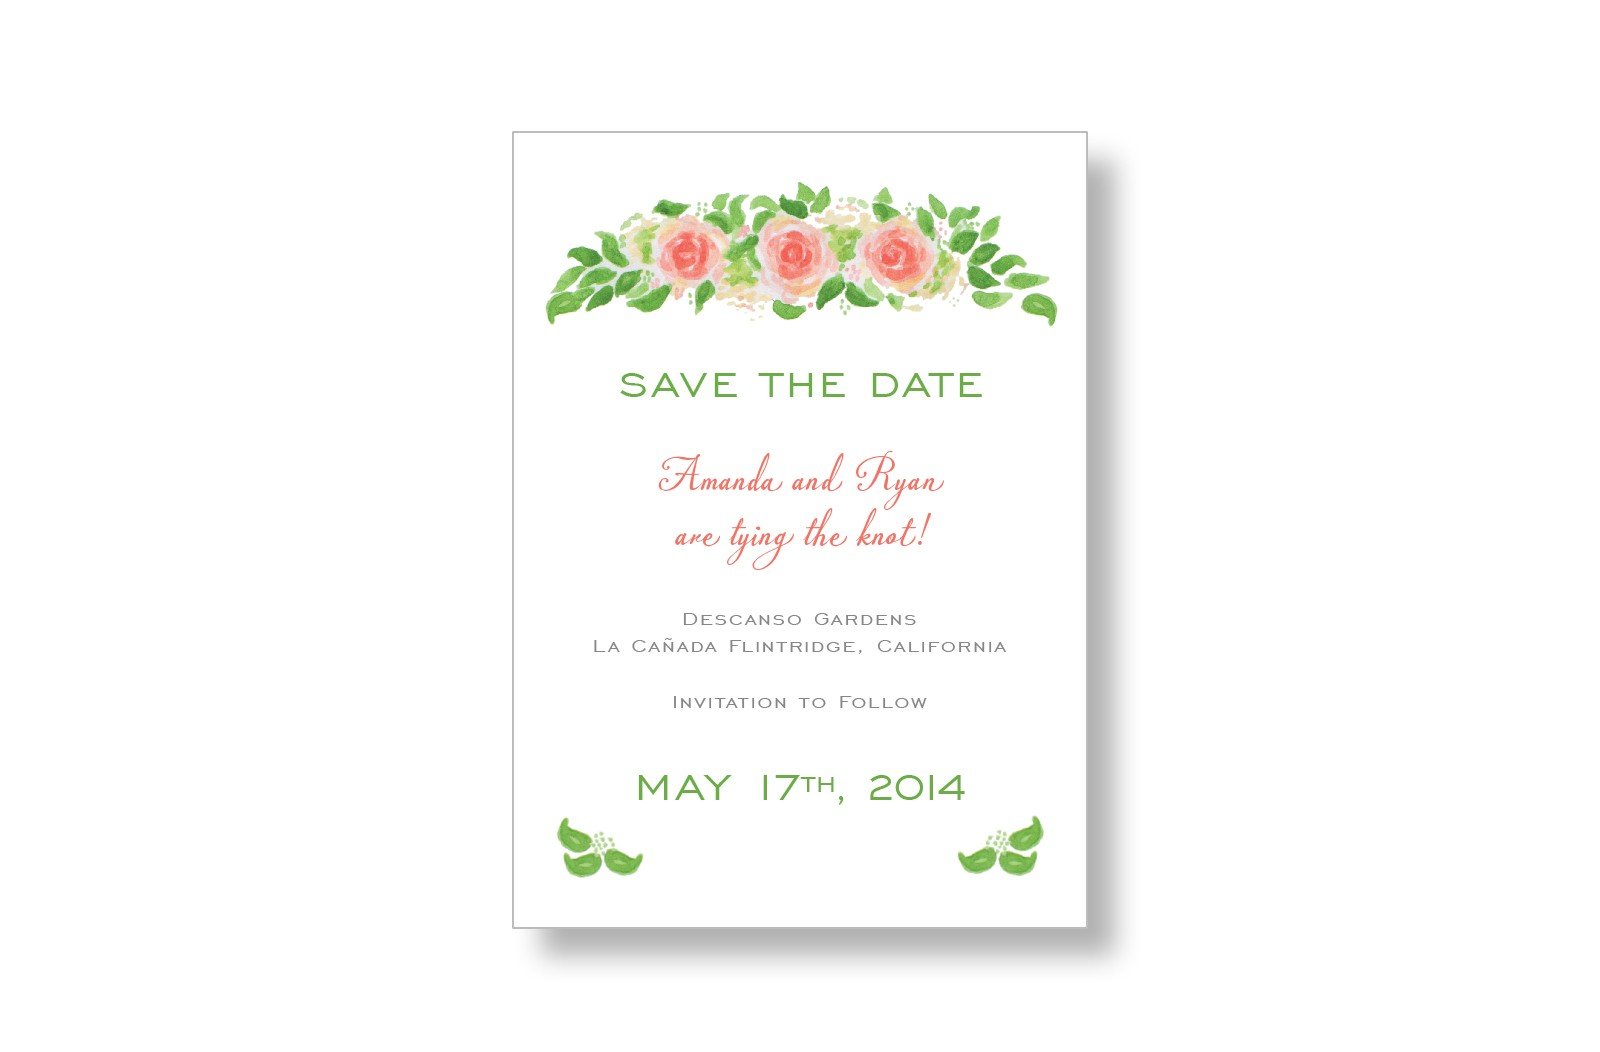 Garden Roses Wedding Save the Date Cards from MarryMoment – Wedding Save the Date Text